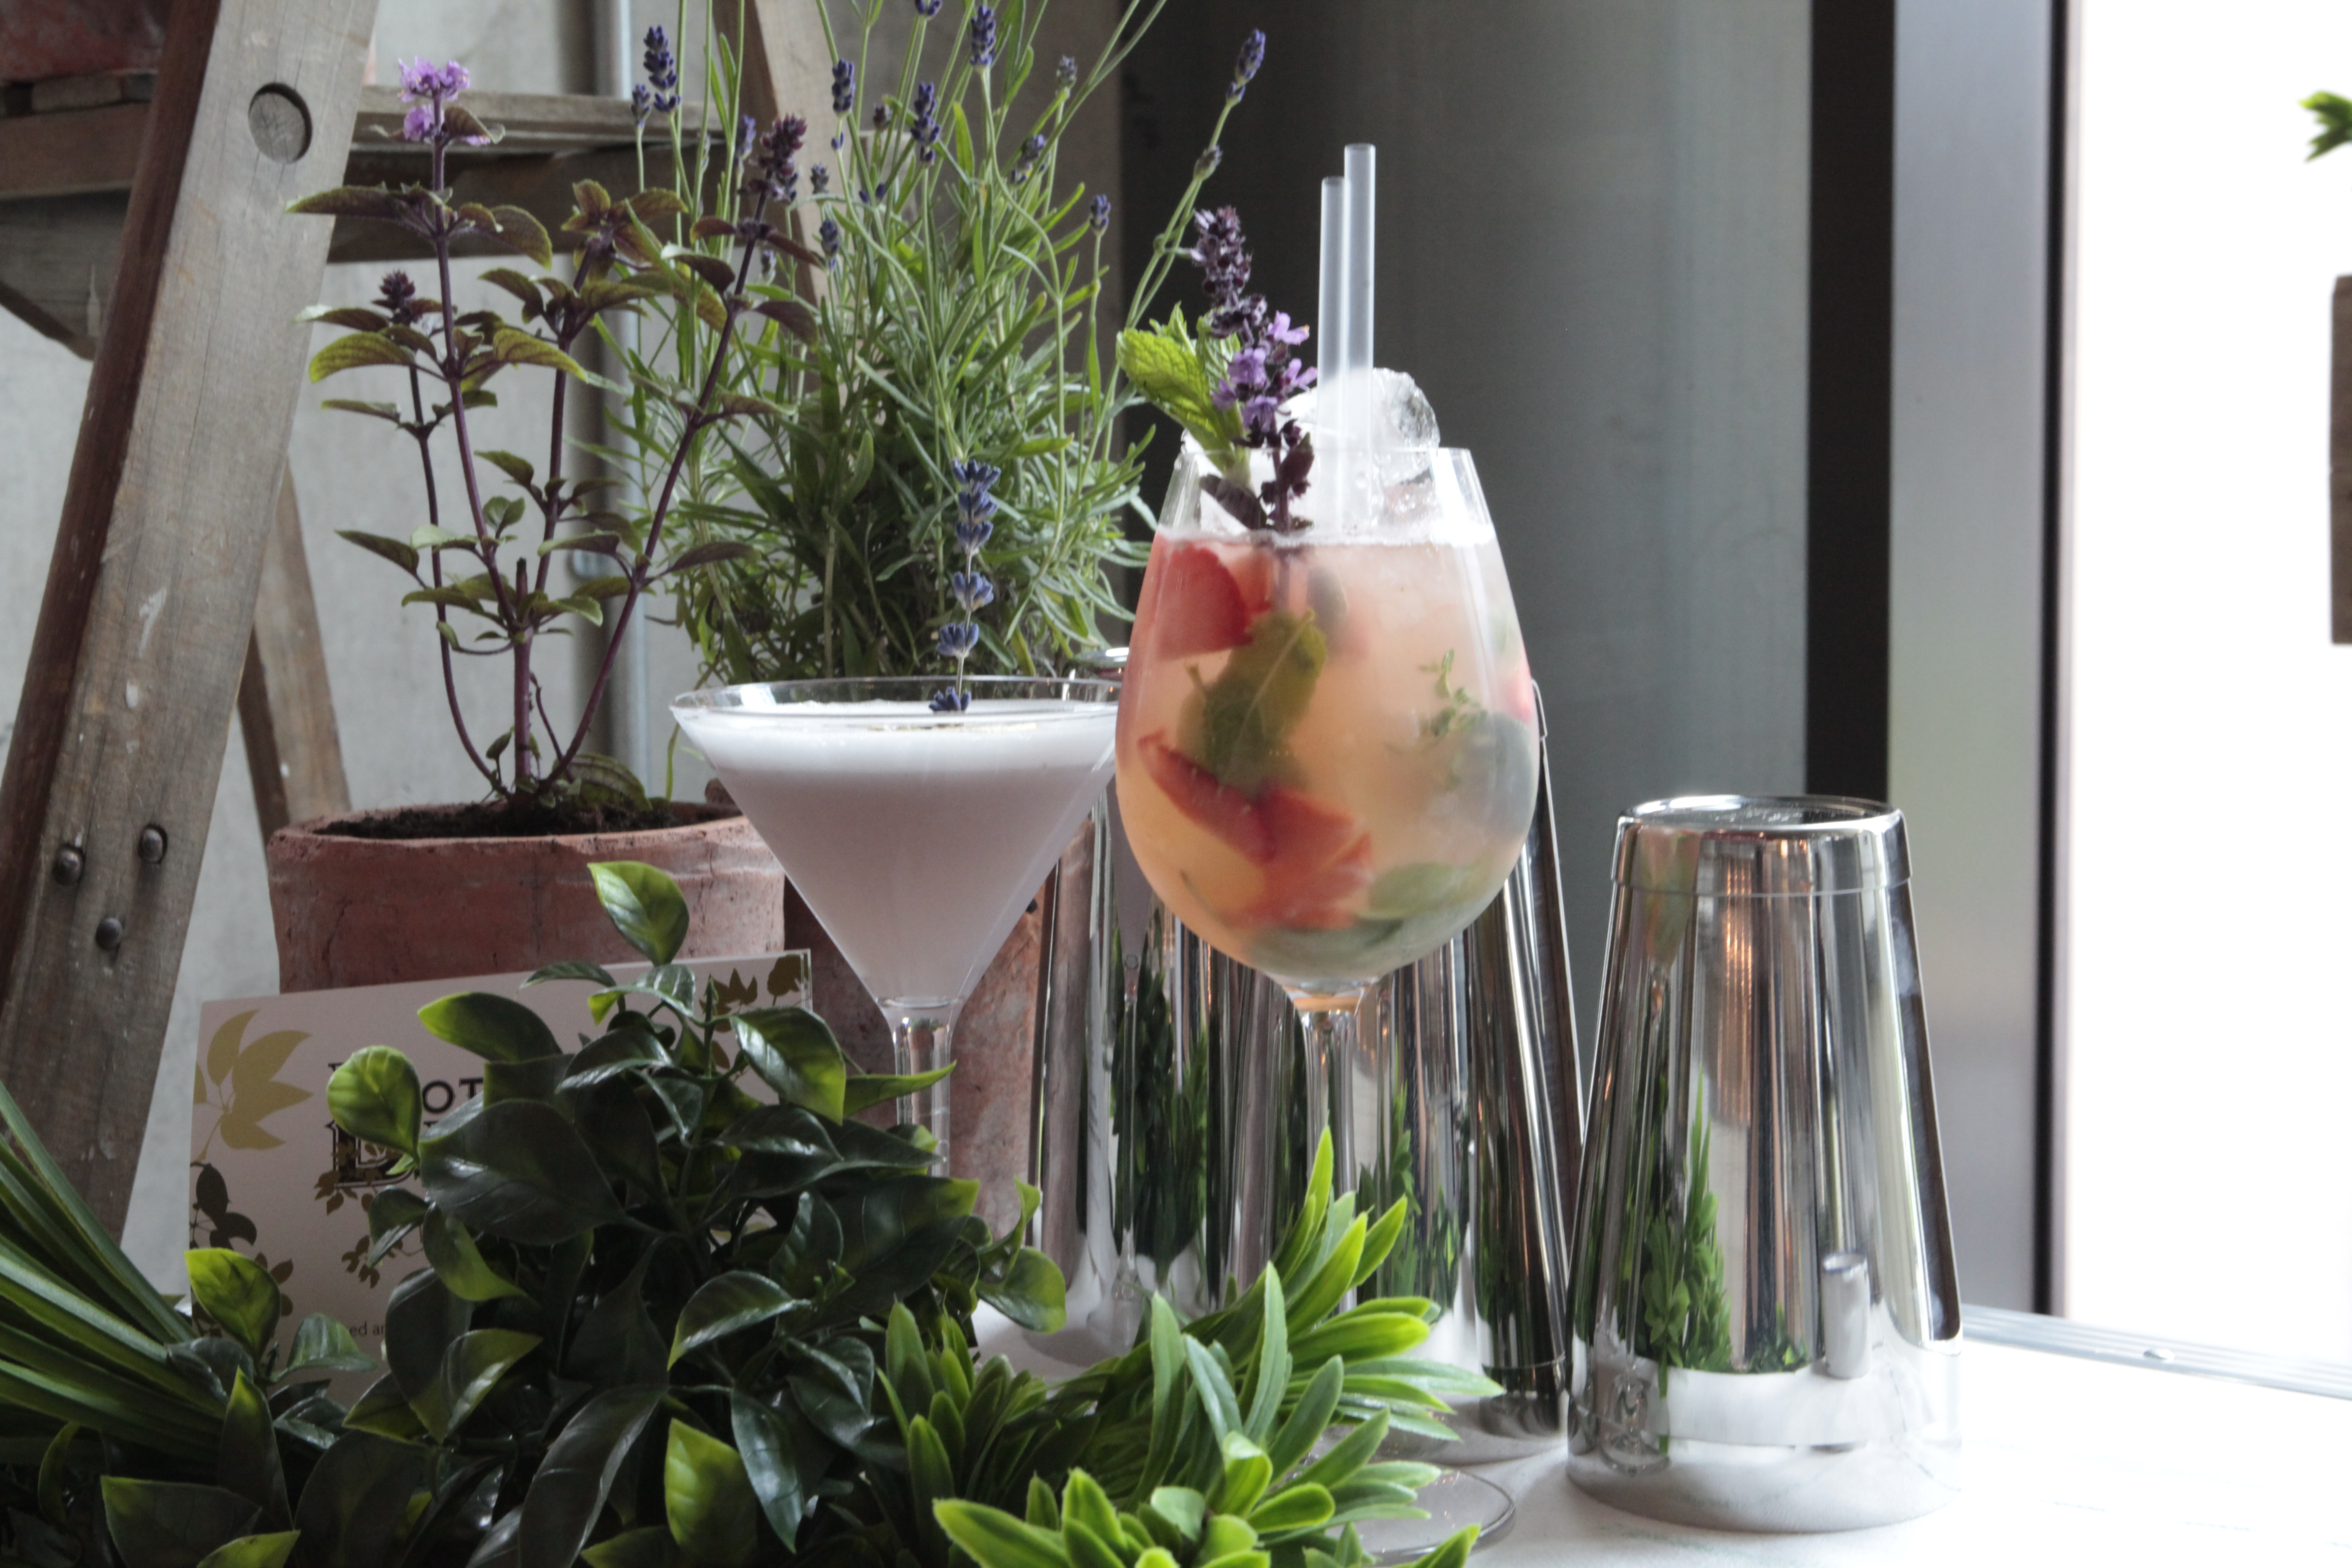 A gin cocktail is shown next to botanicals.